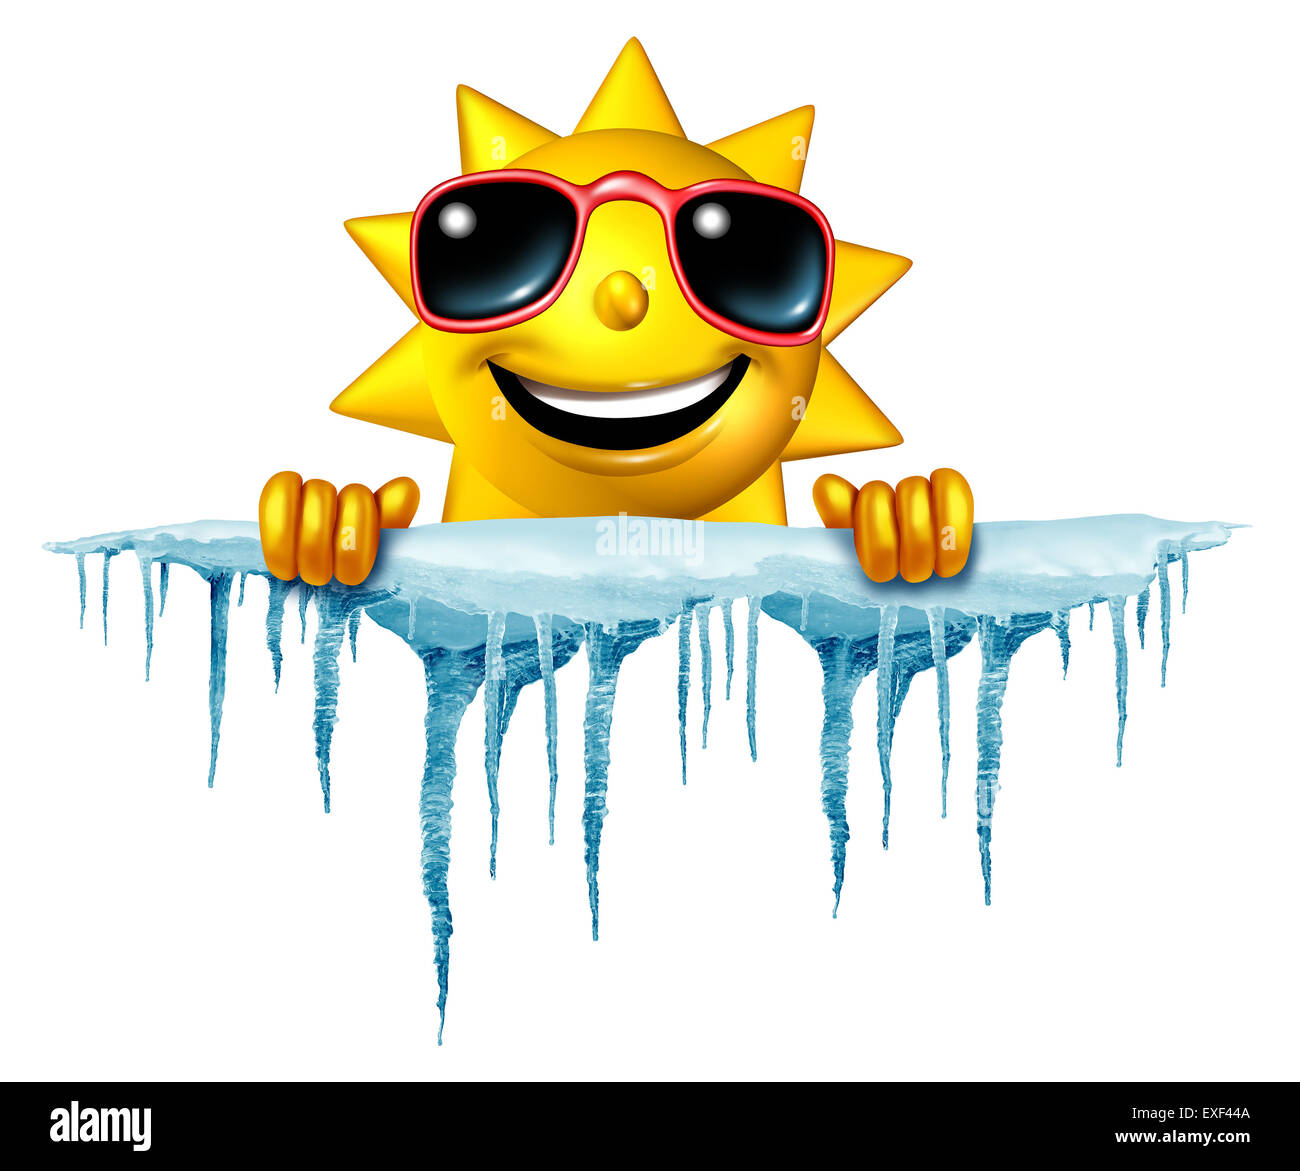 Summer cool down concept and cooling off idea as a sun character icon holding on to a chunk of snow and ice with - Stock Image